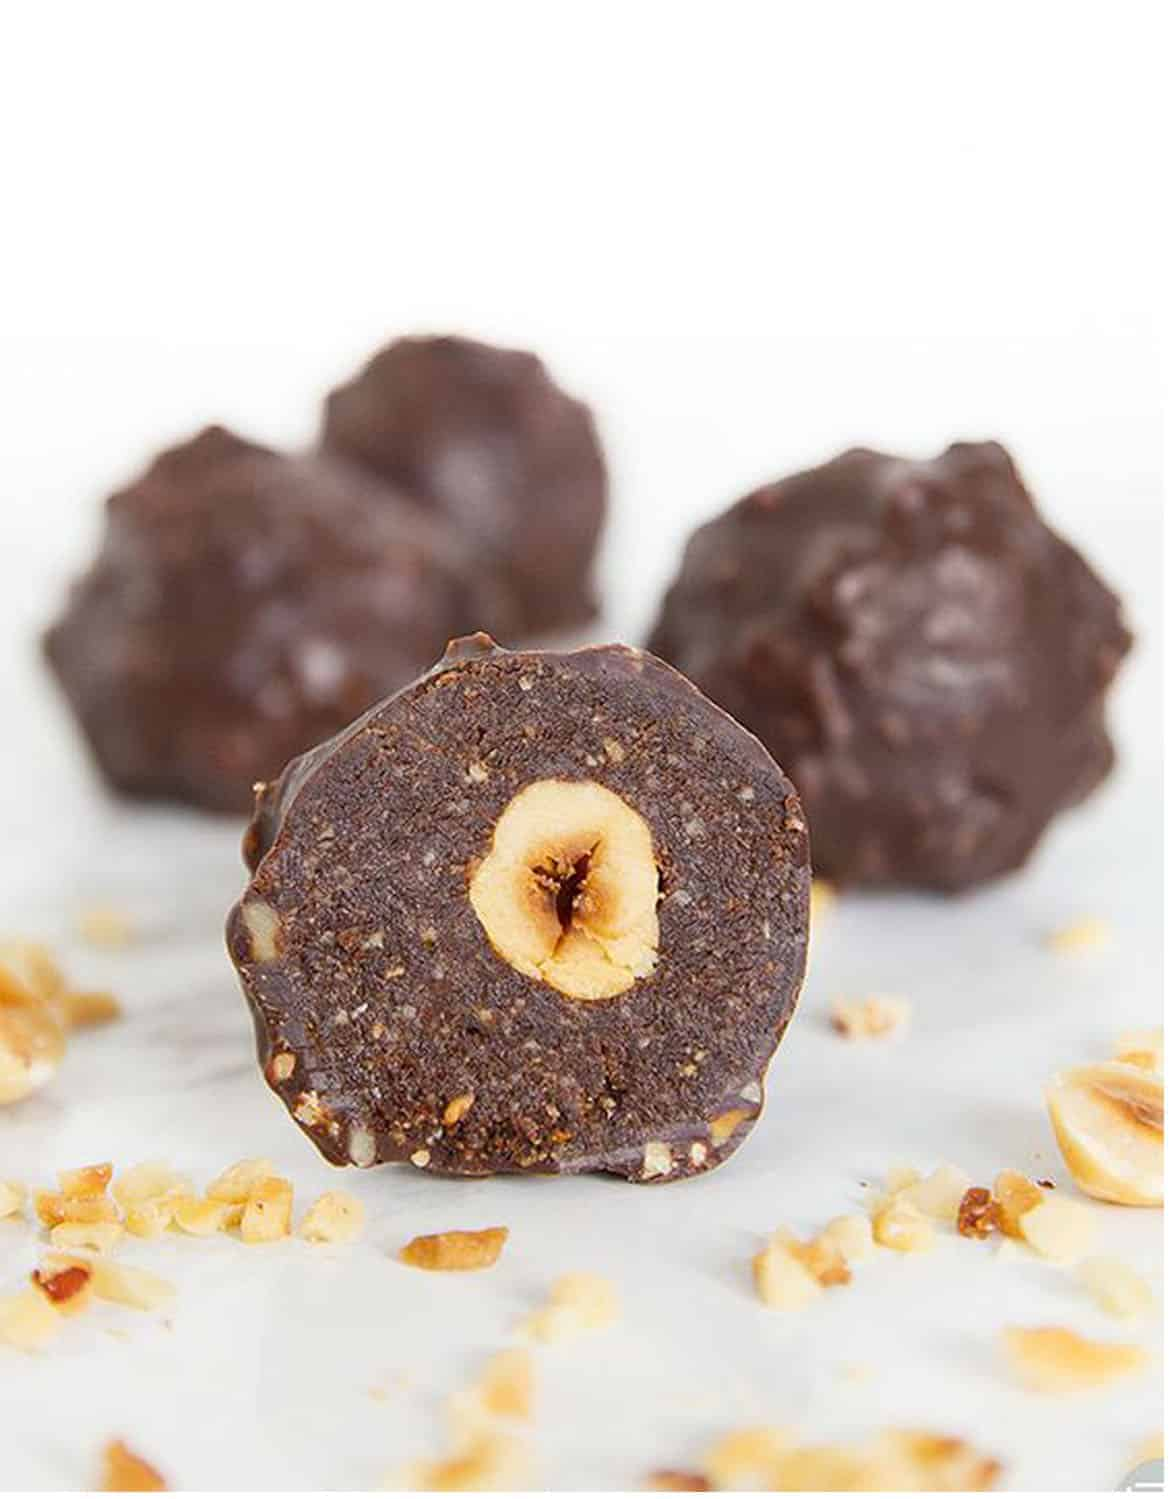 Homemade Ferrero Rocher truffles with hazelnuts over a white background - The Clever Meal